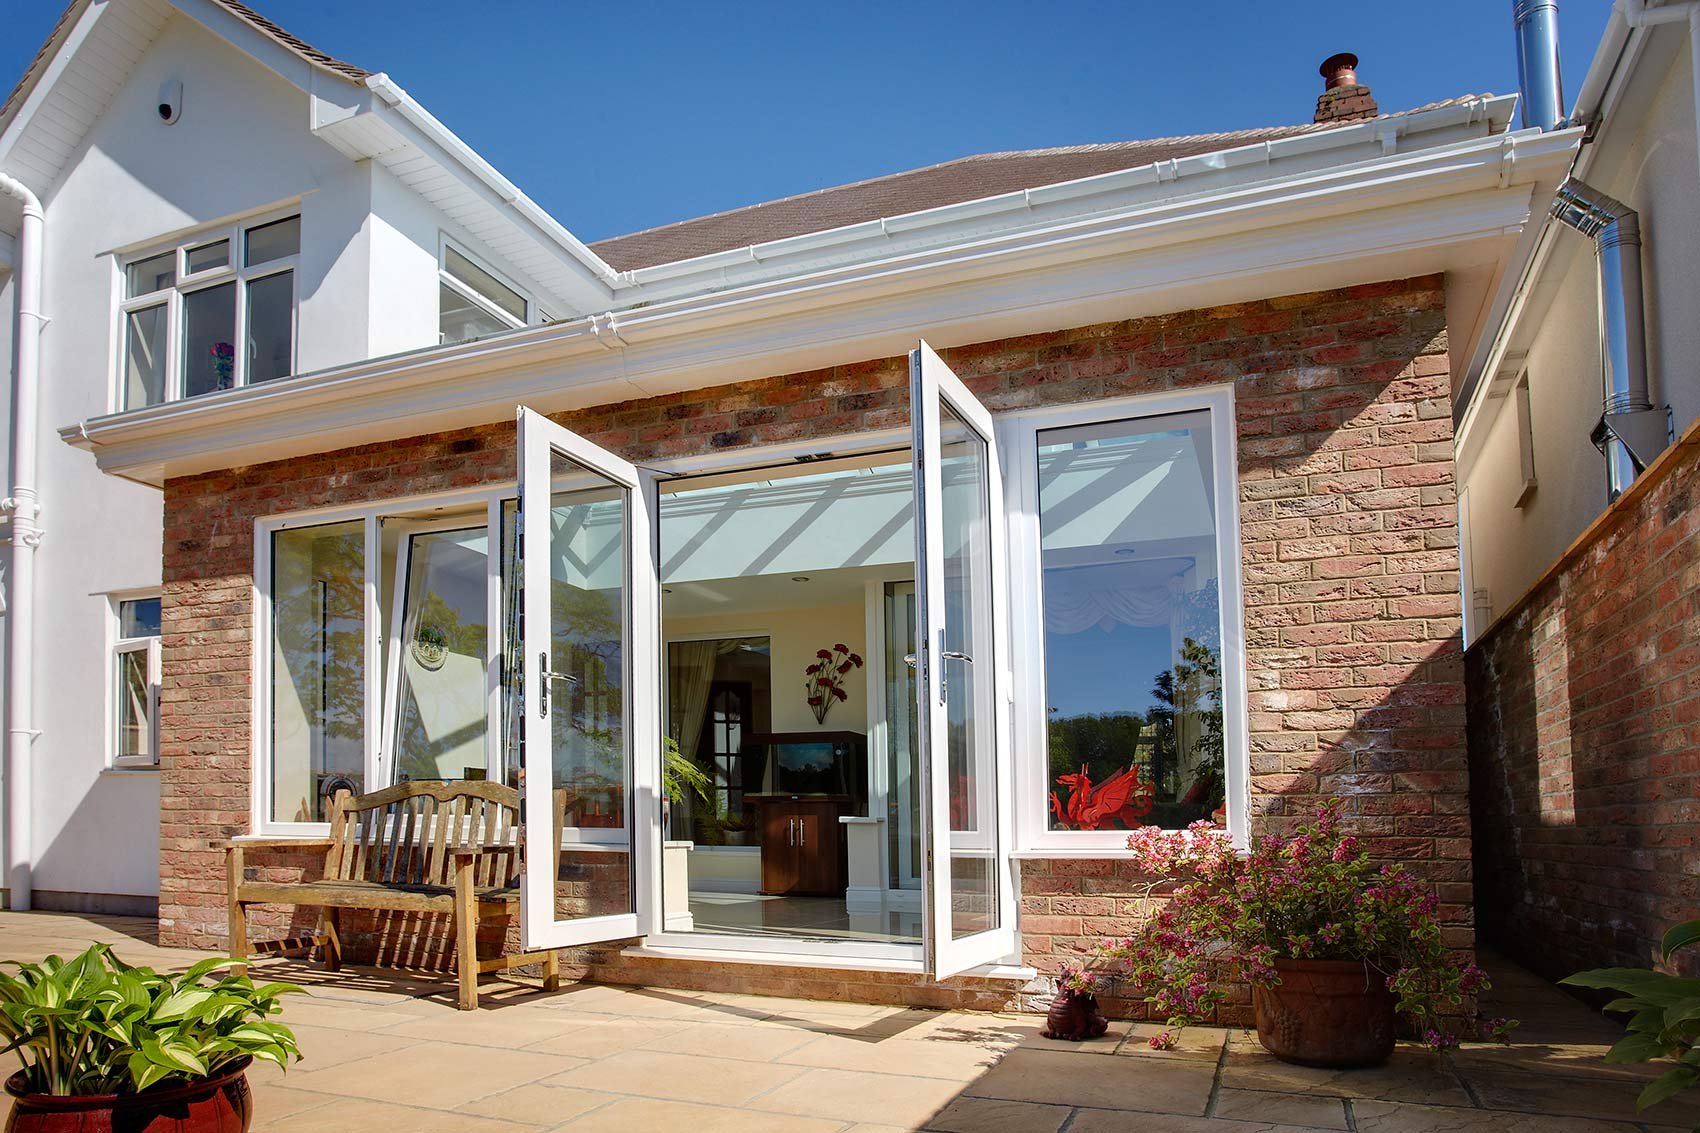 French Doors Prices Upvc French Doors Bradford Leeds Upvc French Doors